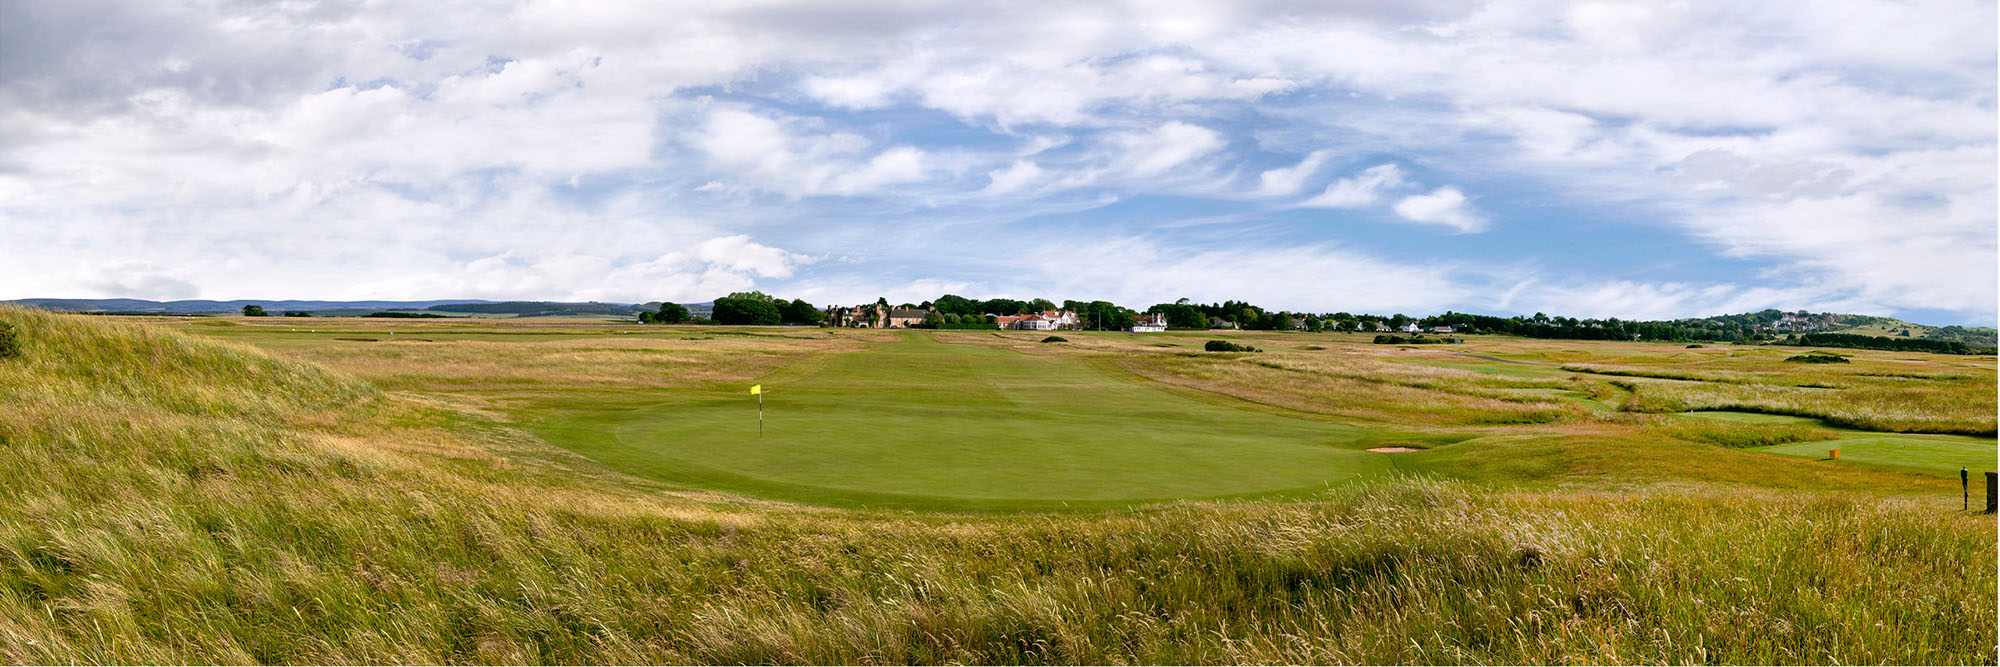 Golf Course Image - Muirfield No. 10